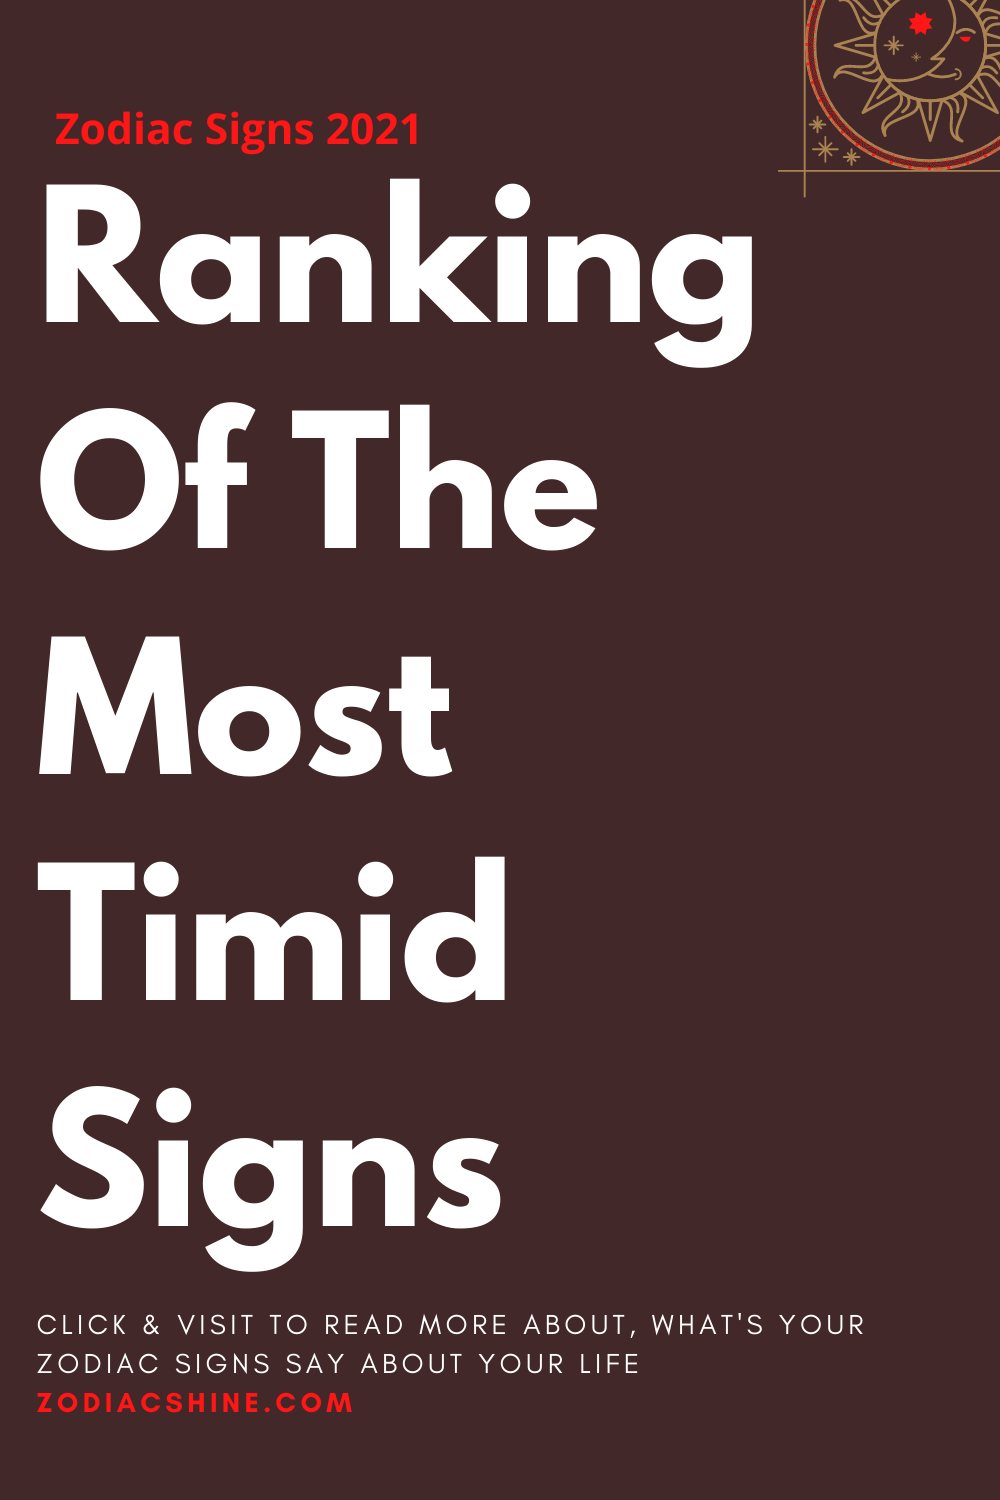 Ranking Of The Most Timid Signs